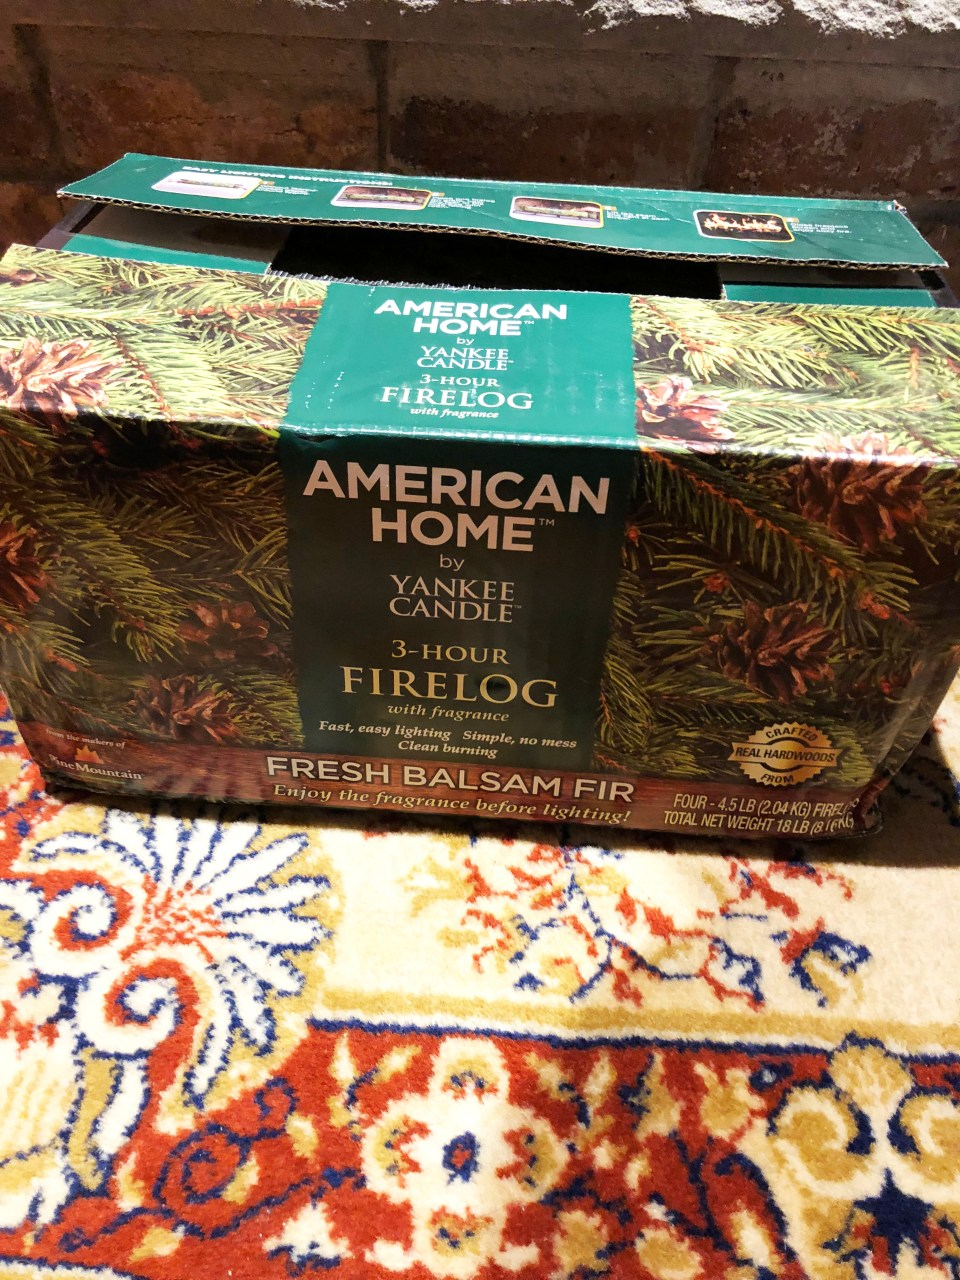 Pine Mountain - American Home by Yankee Candle Fire Log